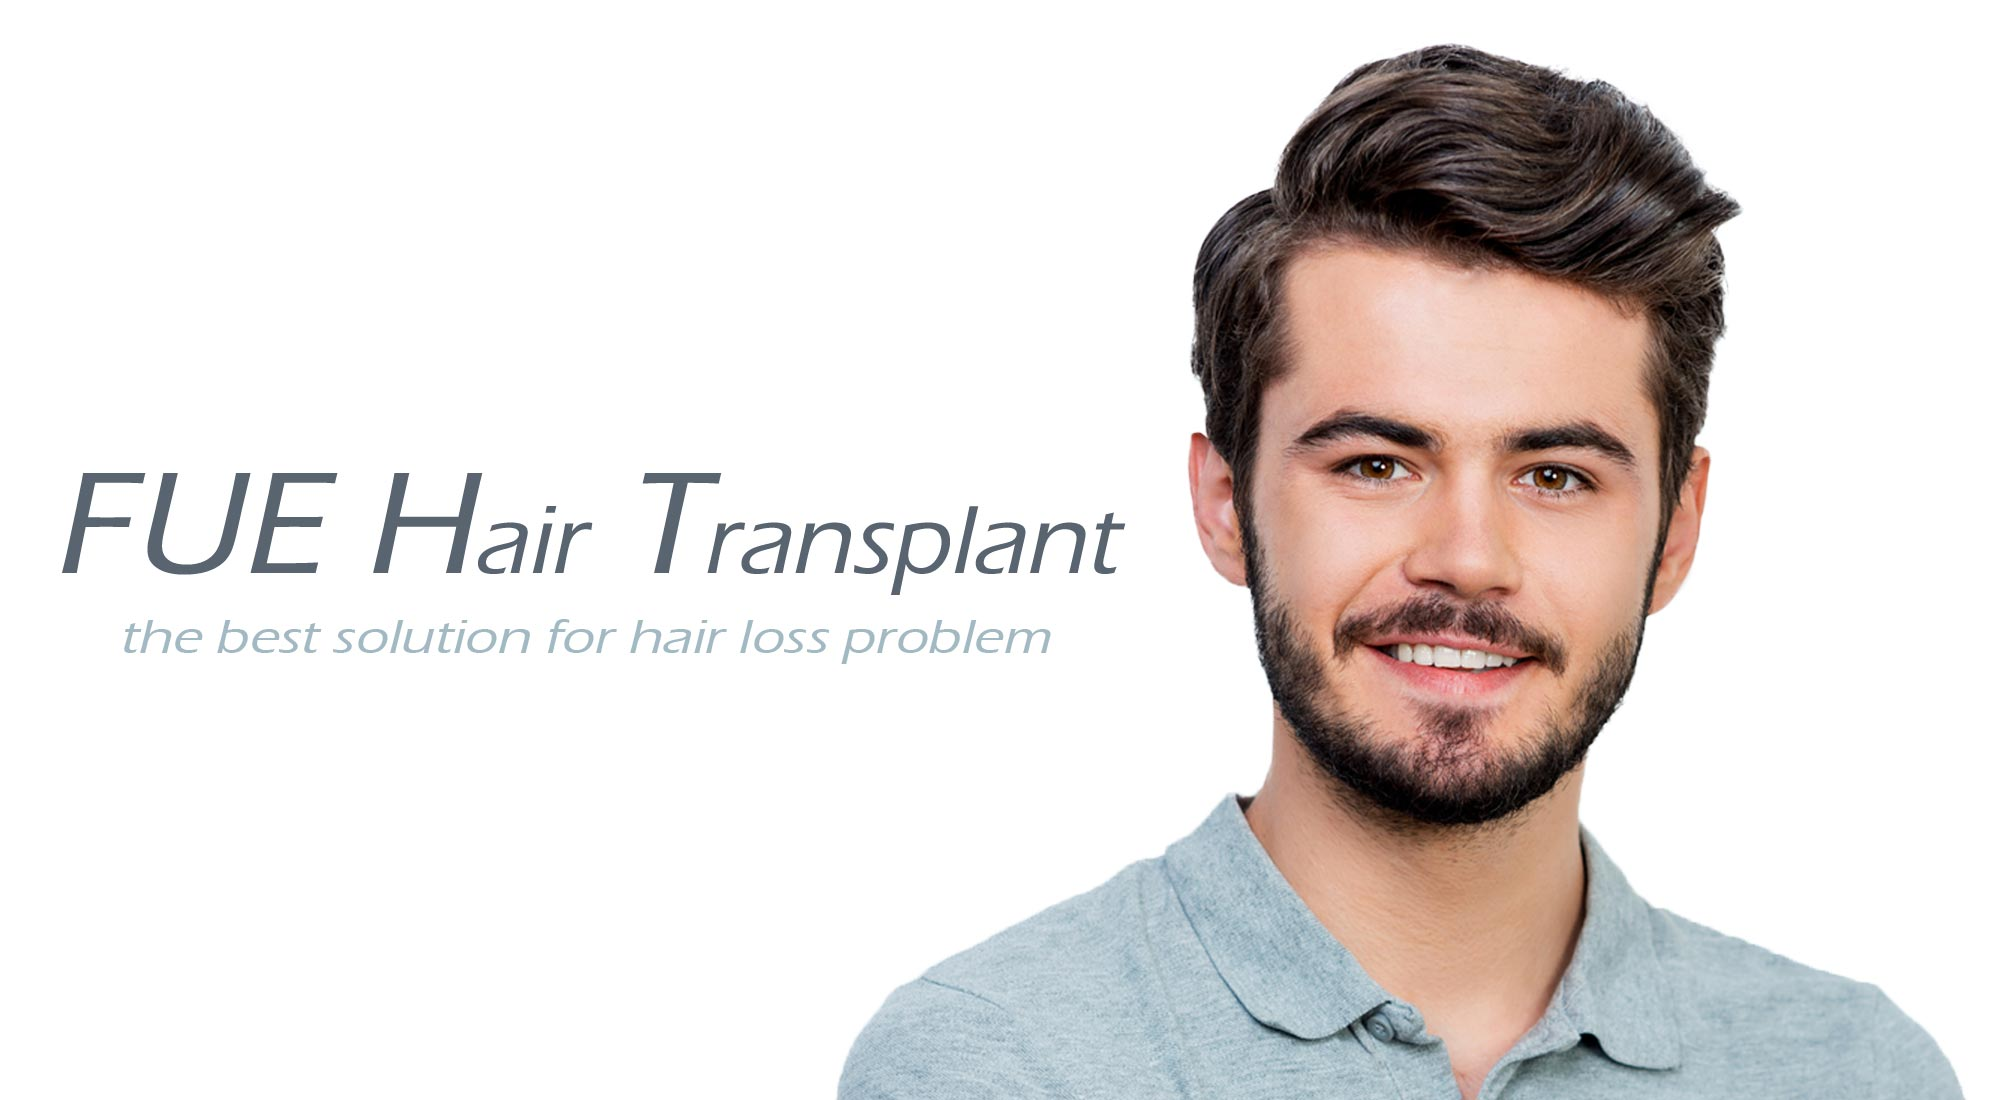 Hair Transplants Chandigarh 1 1 - Check The Hair Transplant Clinics In Chandigarh For Hair Growth